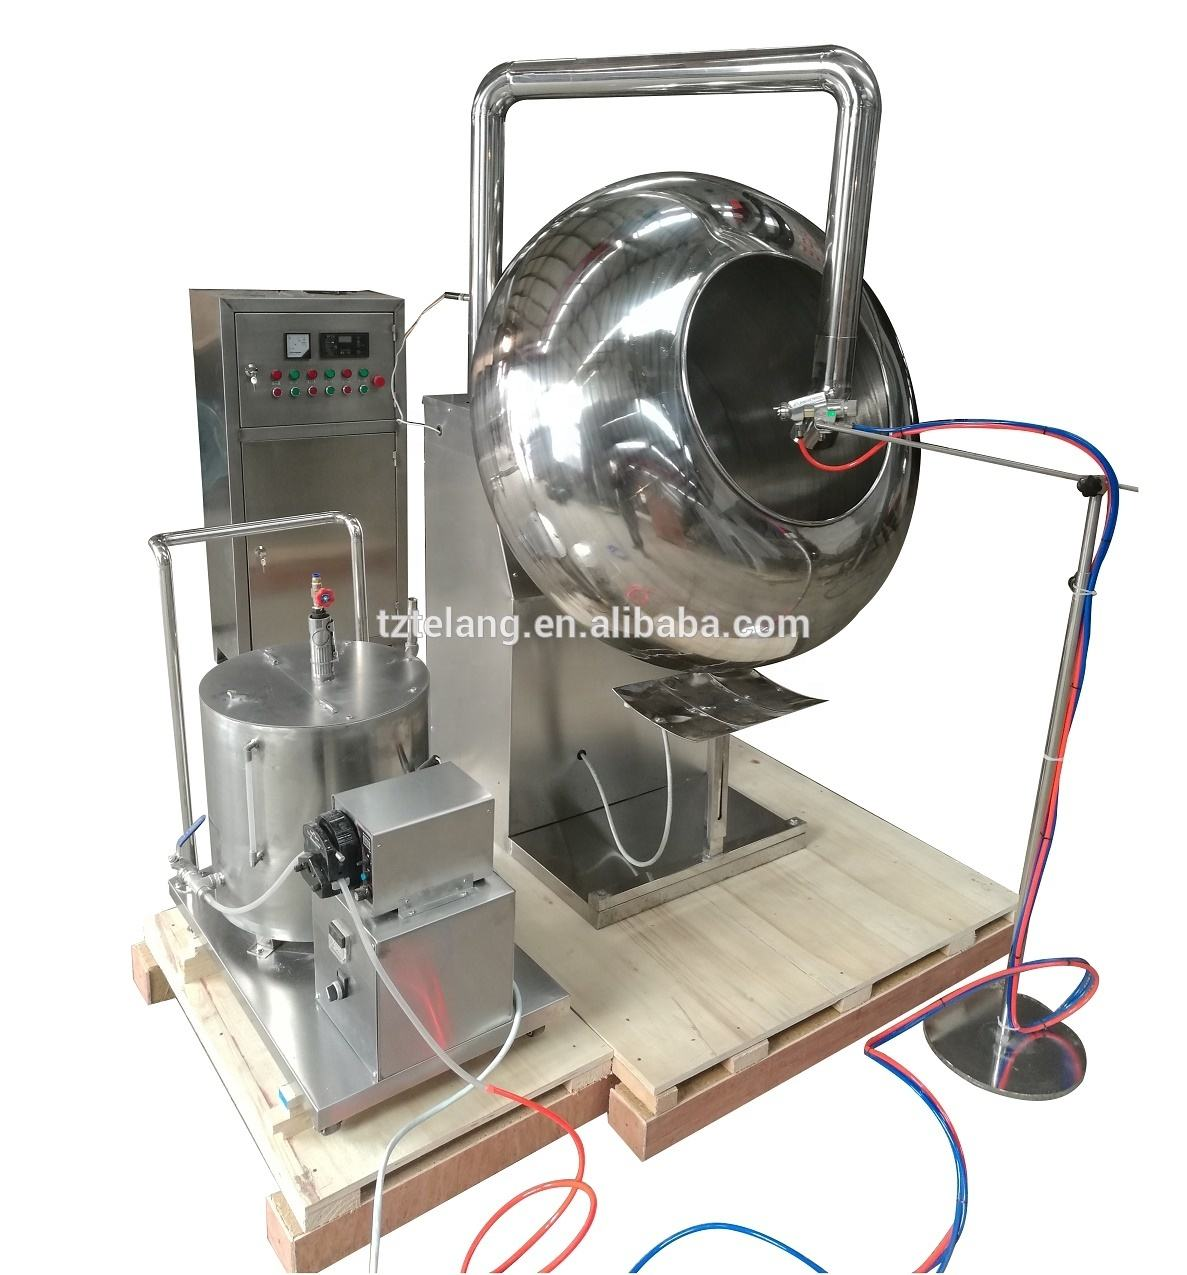 BY Sugar Coating Machine for Nut Peanut Almond Raisin Coating